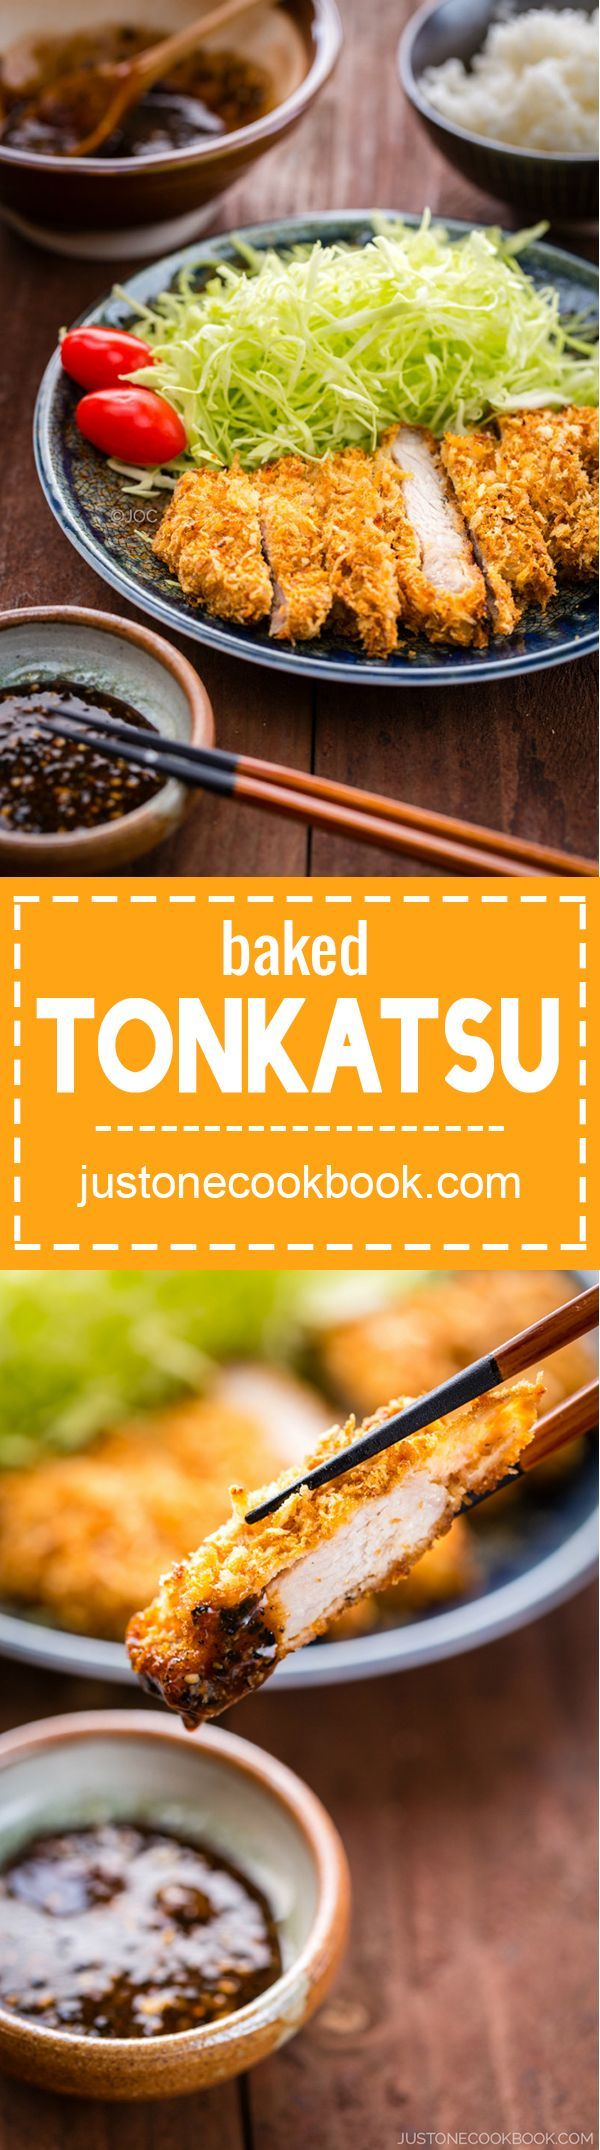 Baked tonkatsu recipe recipes and japanese food baked tonkatsu easy japanese recipes at http forumfinder Gallery